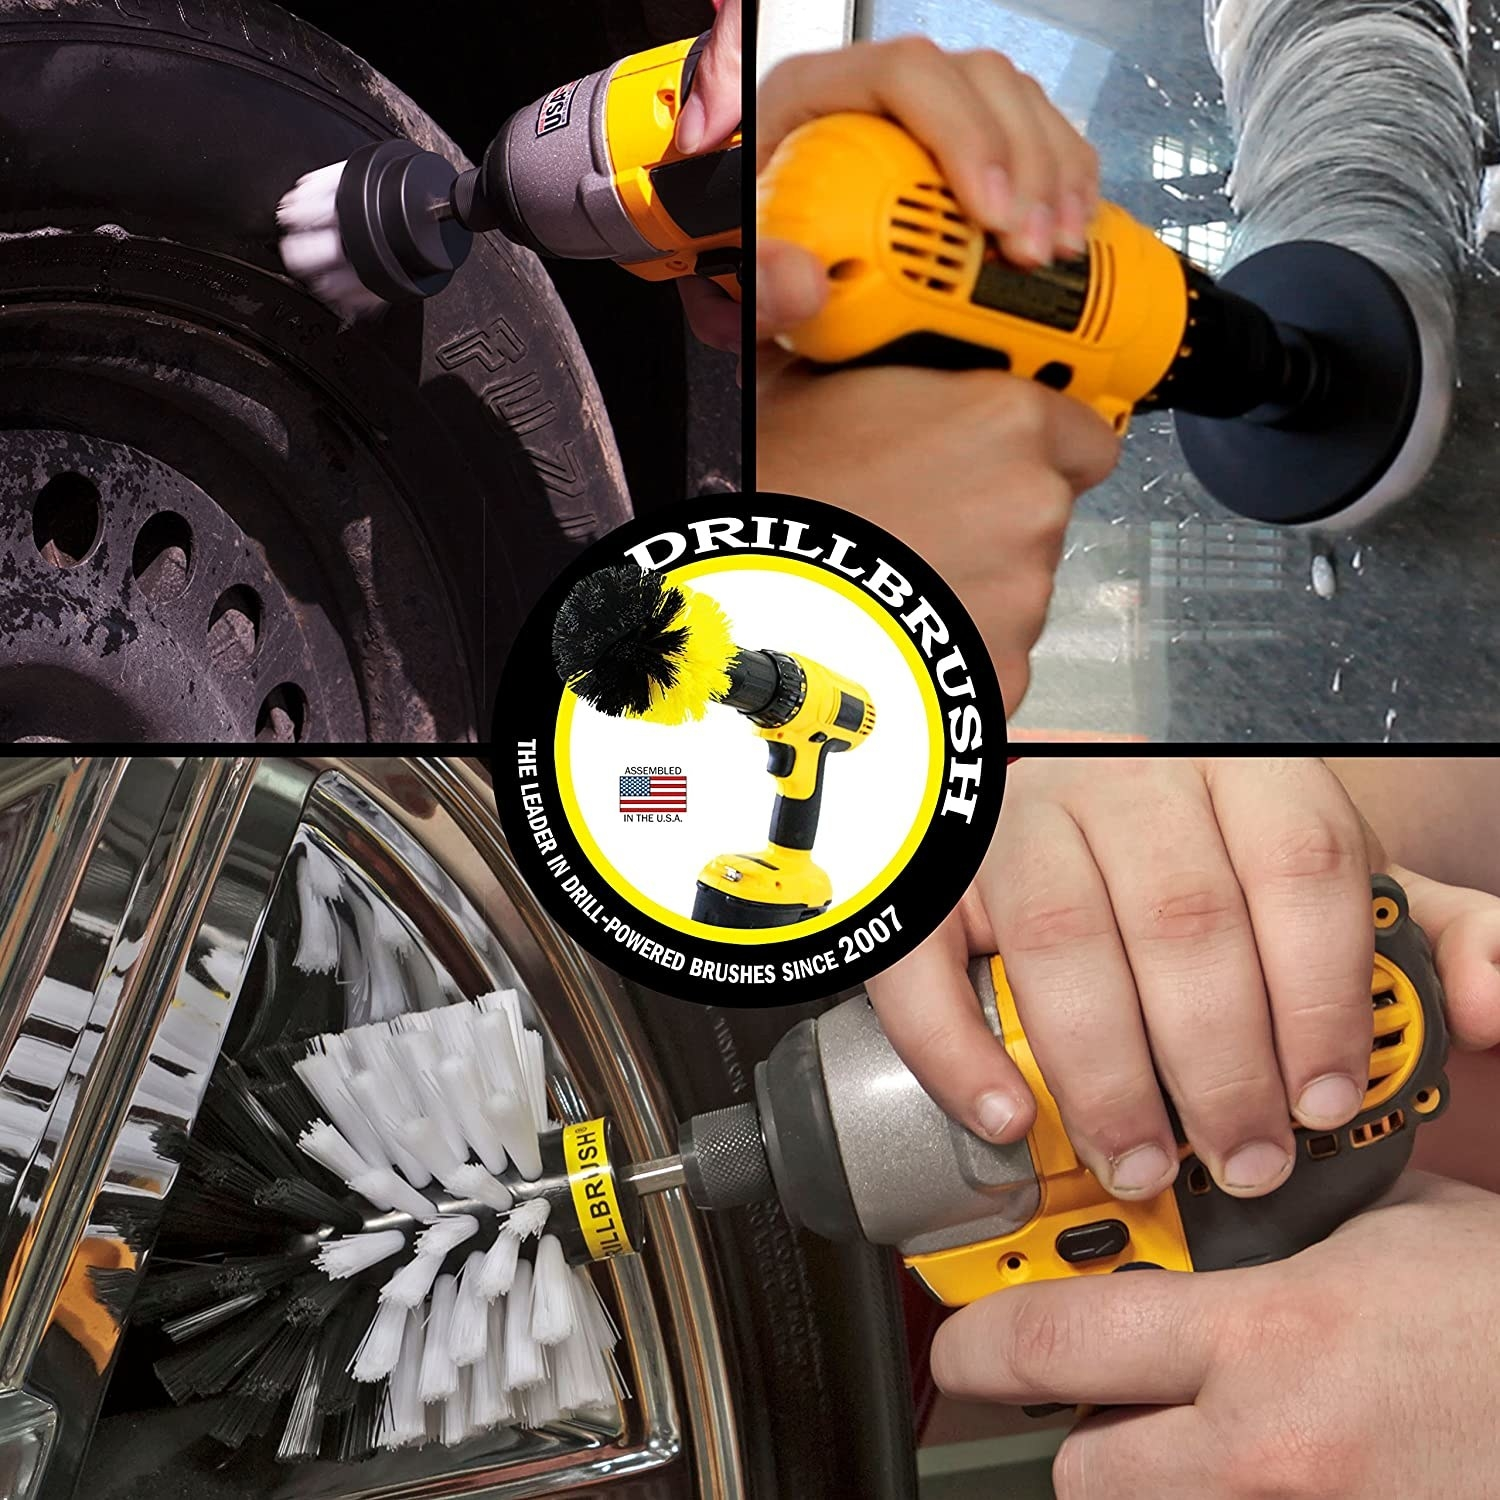 The drill brush attachments can be used to clean tired, tire rims, glass, porcelain and more